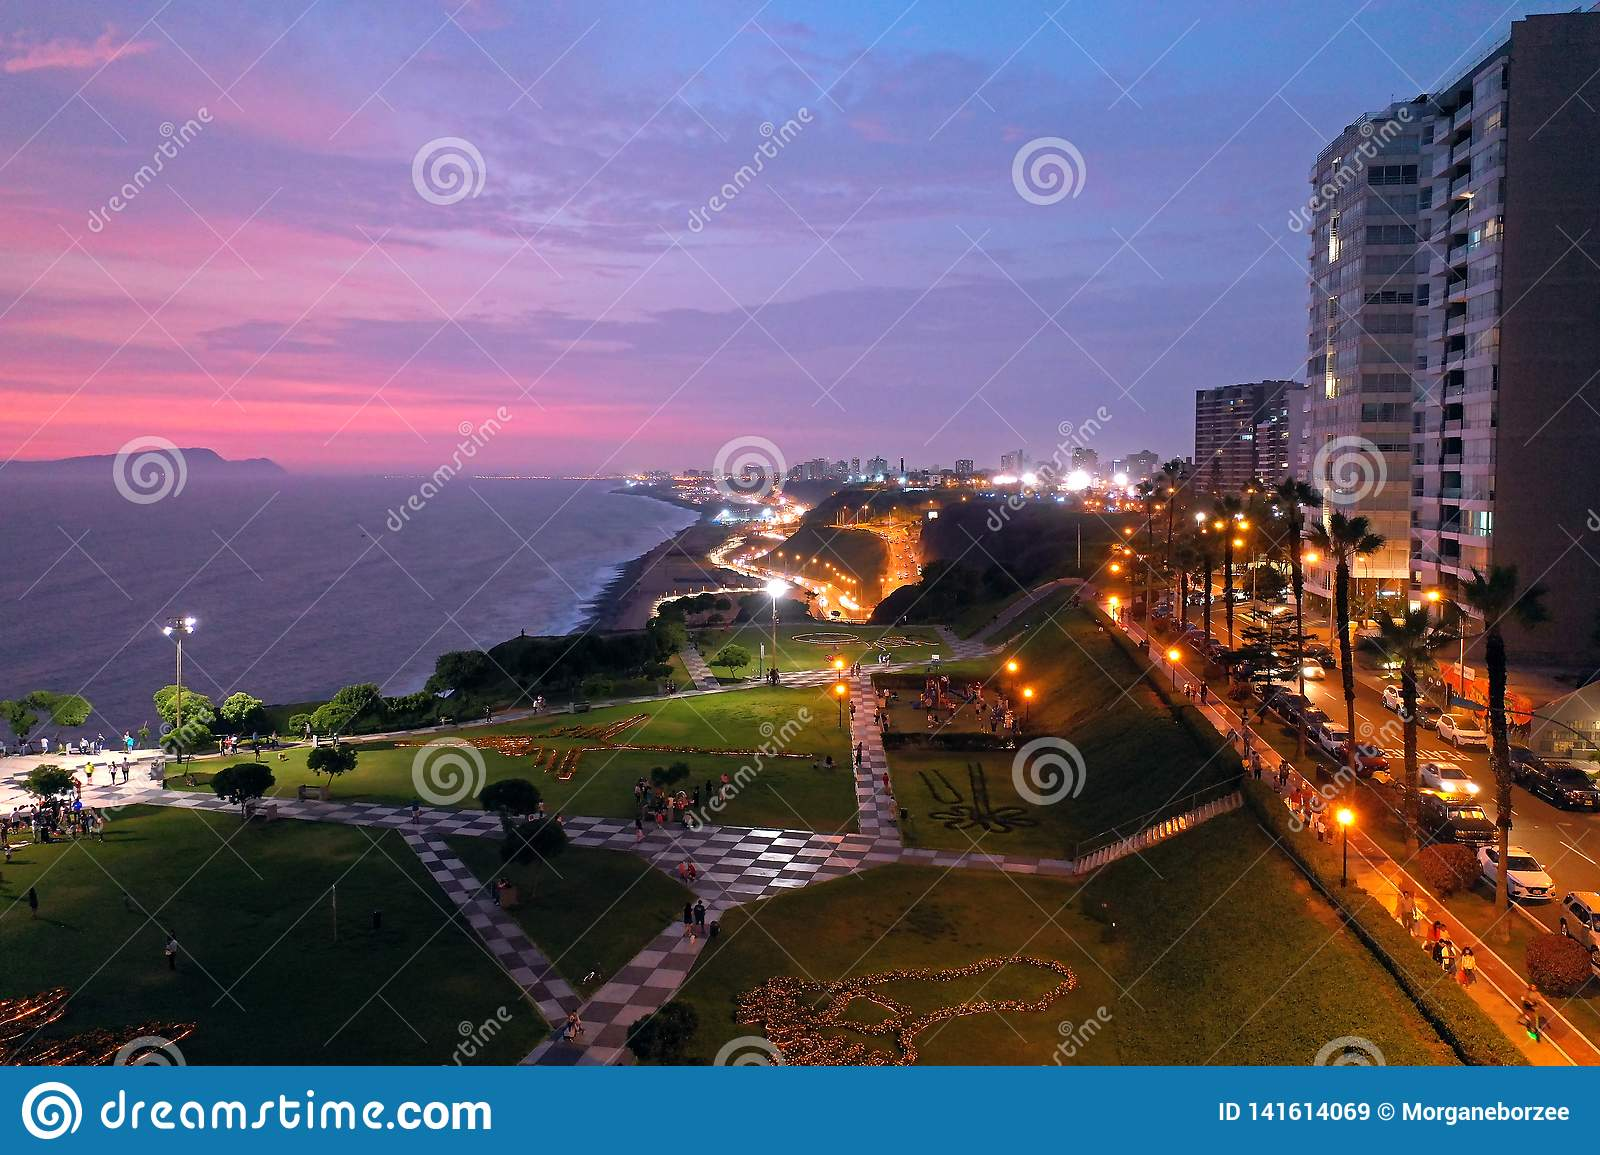 Aerial view of Maria Reiche Park at sunset with scenic seascape